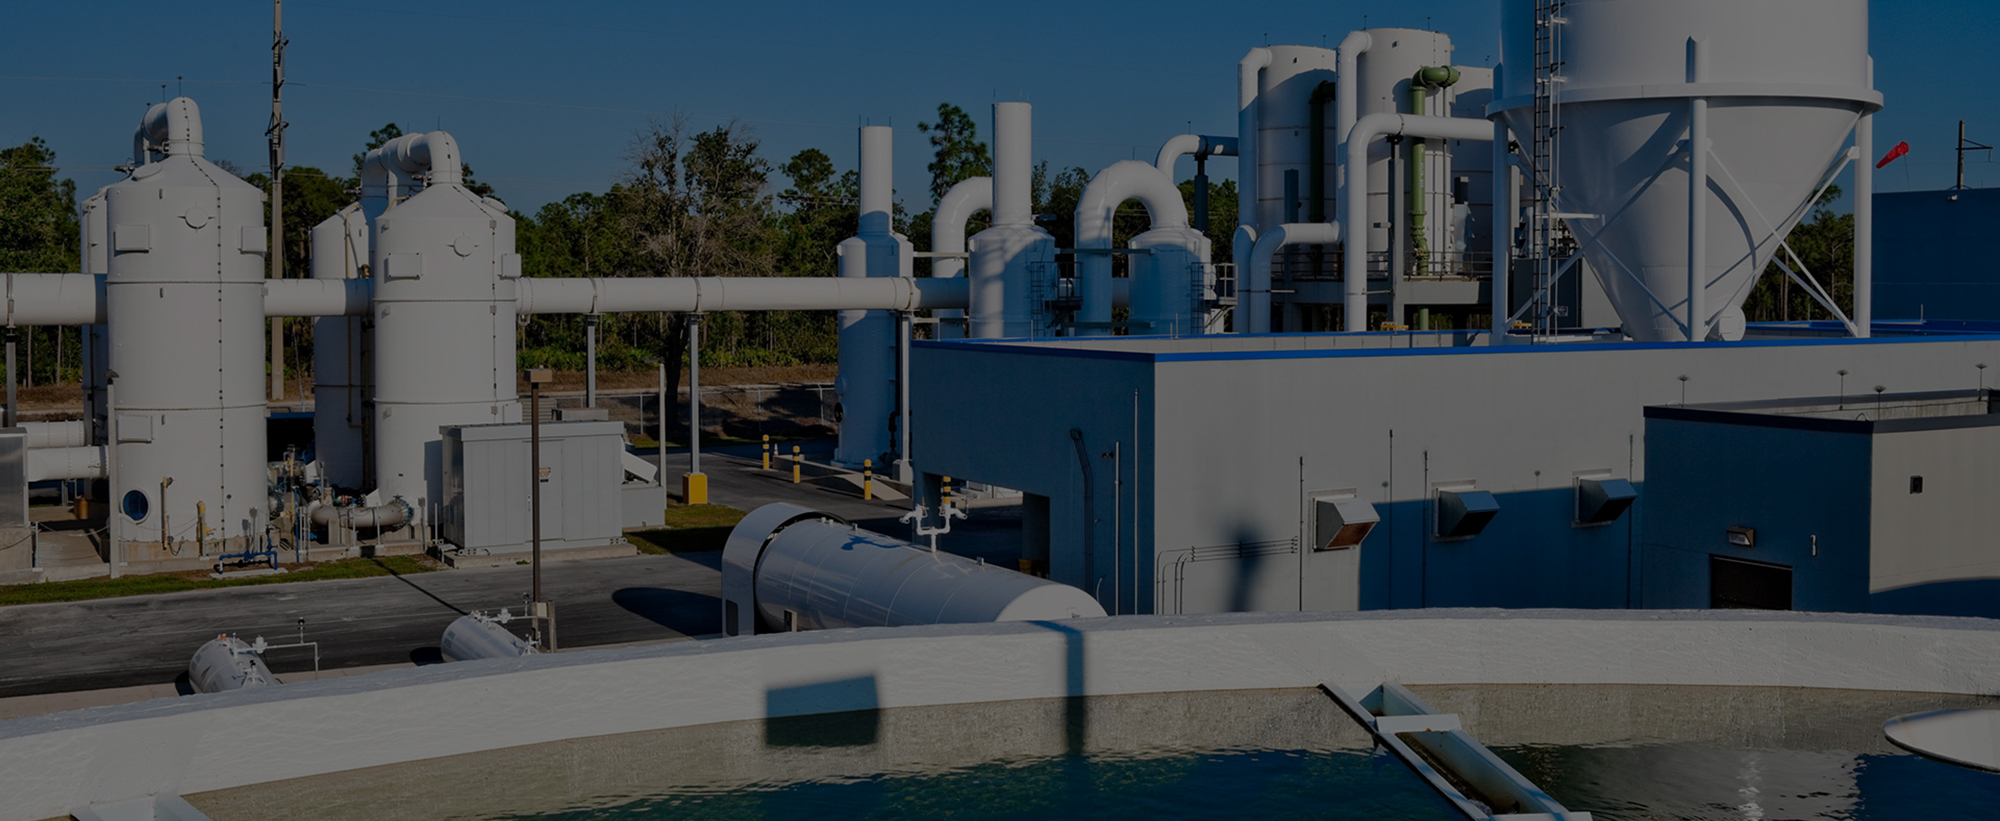 water treatment plant photo